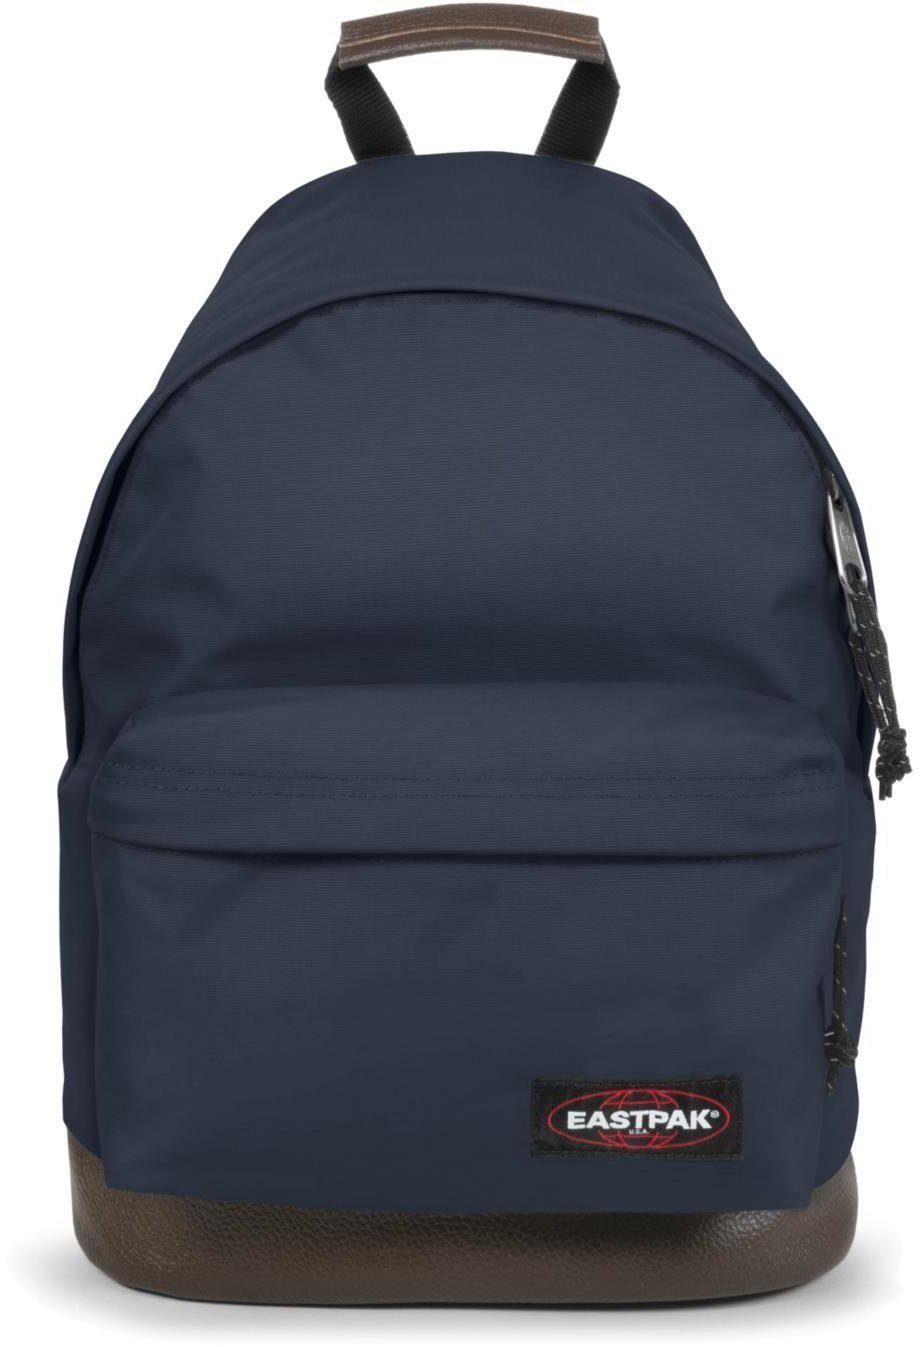 Eastpak Rucksack, »WYOMING cloud navy«